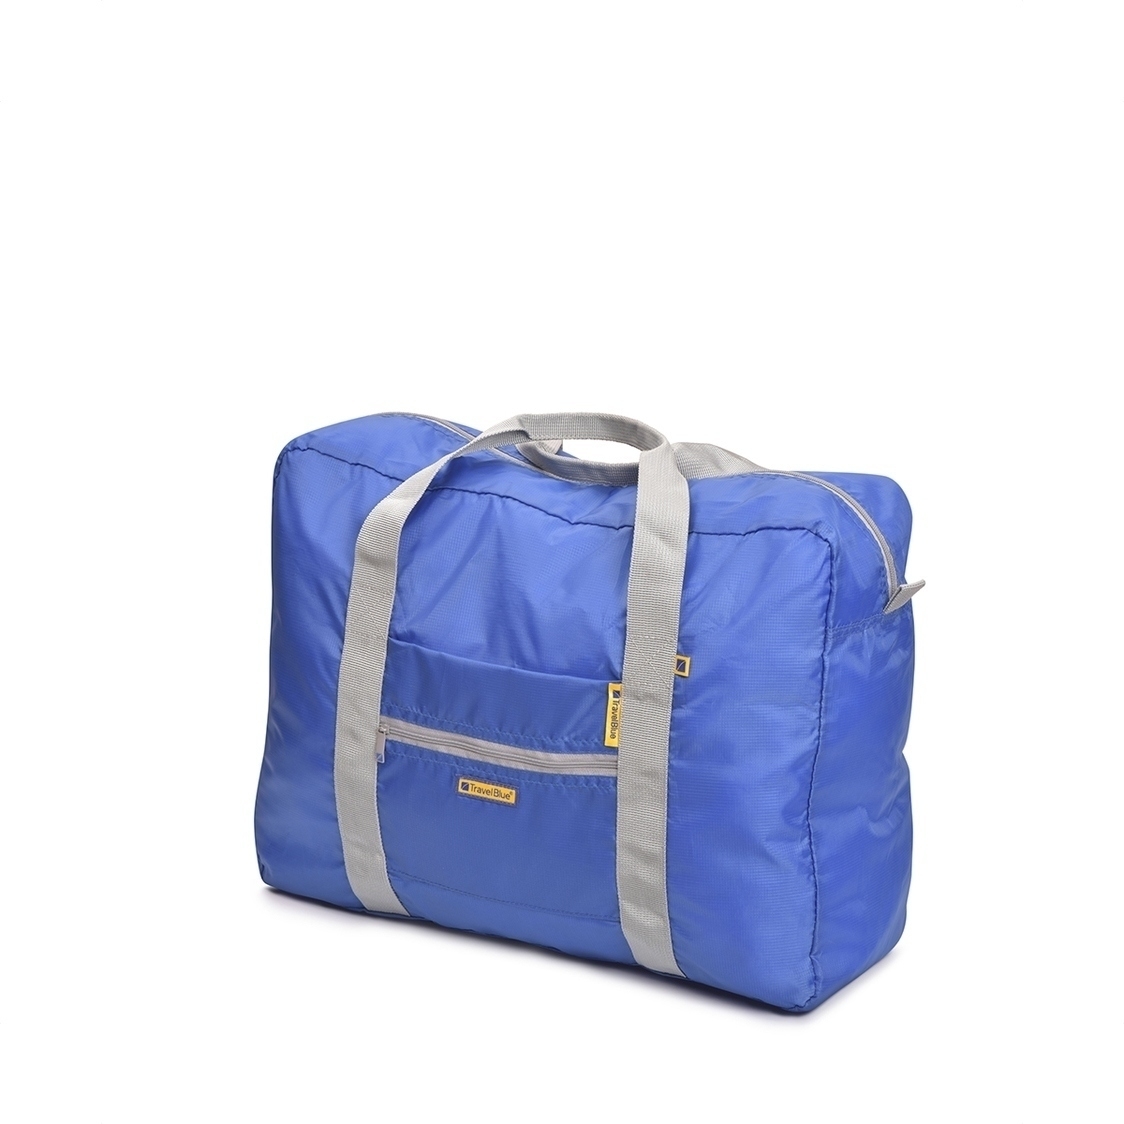 066 Foldable Carry Bag 30L Blue